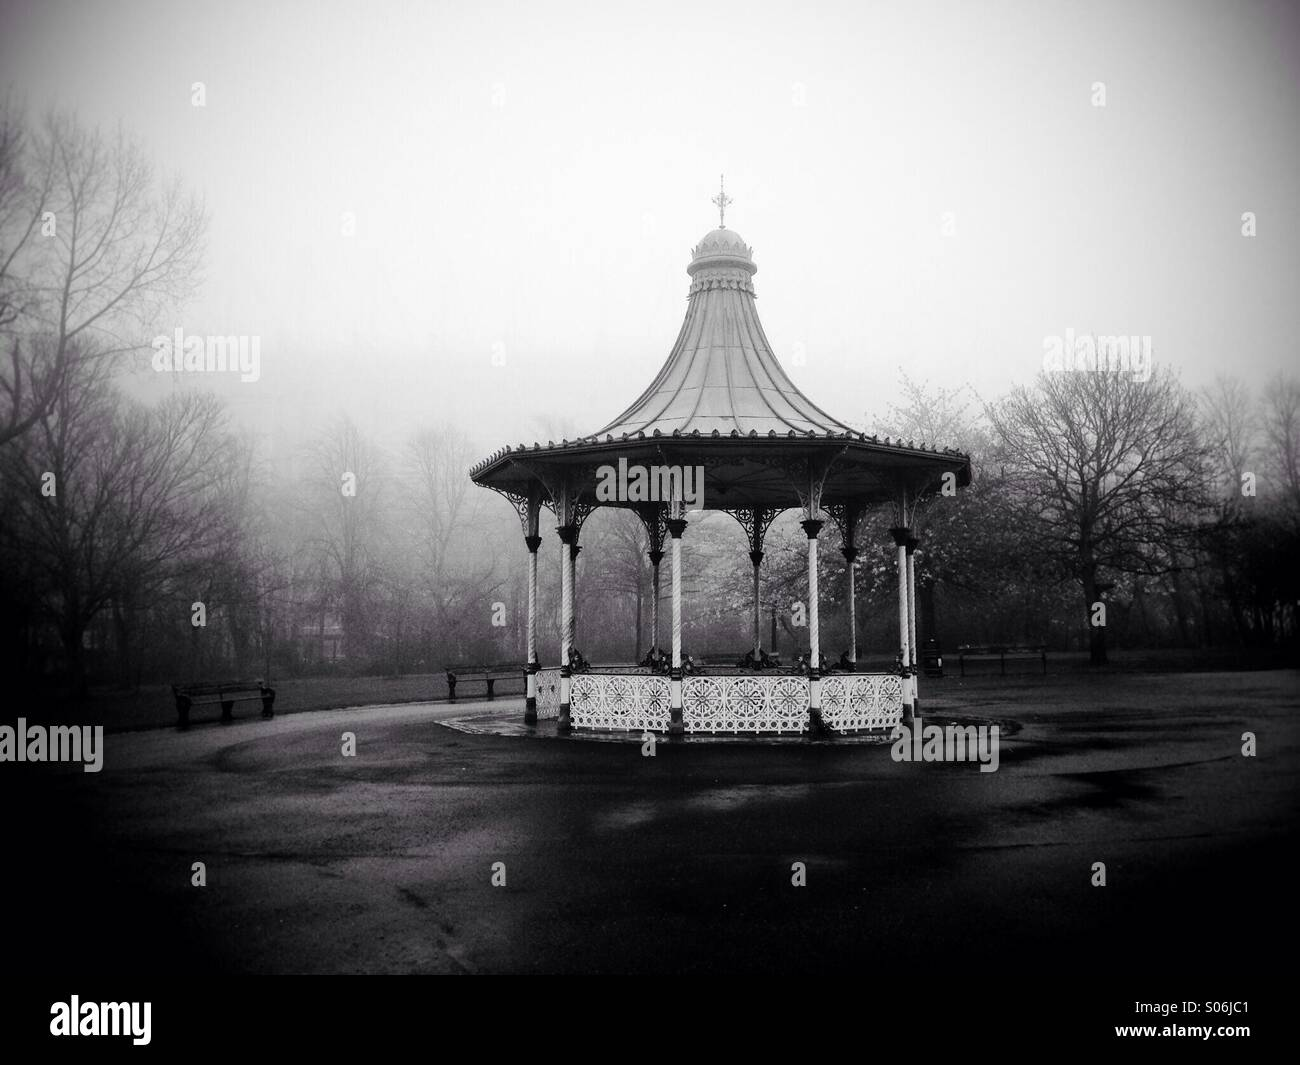 Bandstand in Leazes Park, Newcastle Upon Tyne on a foggy day. - Stock Image